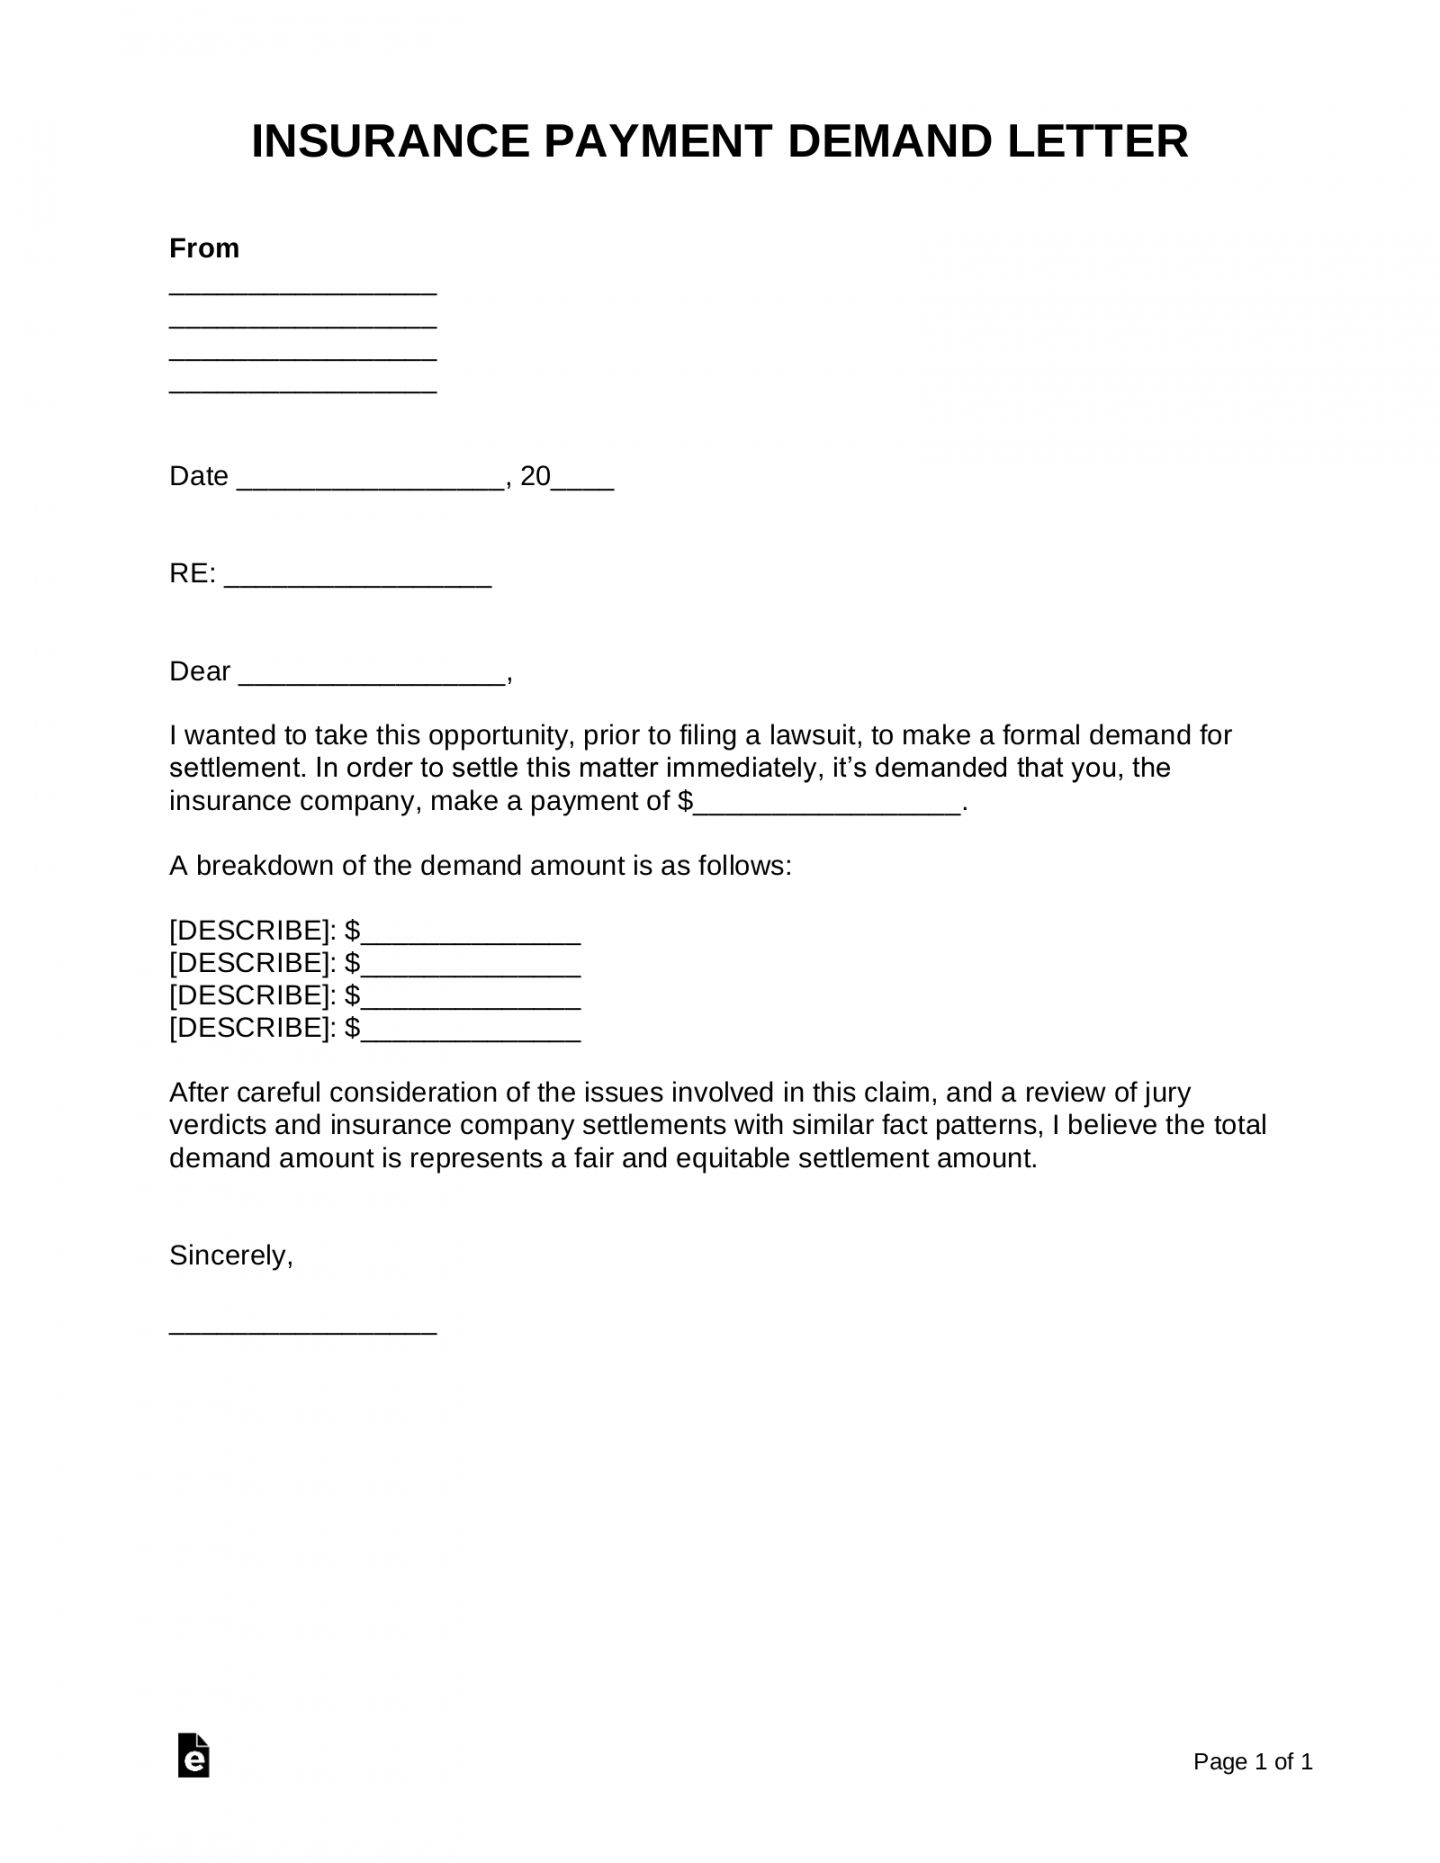 Pin On Demand Letter